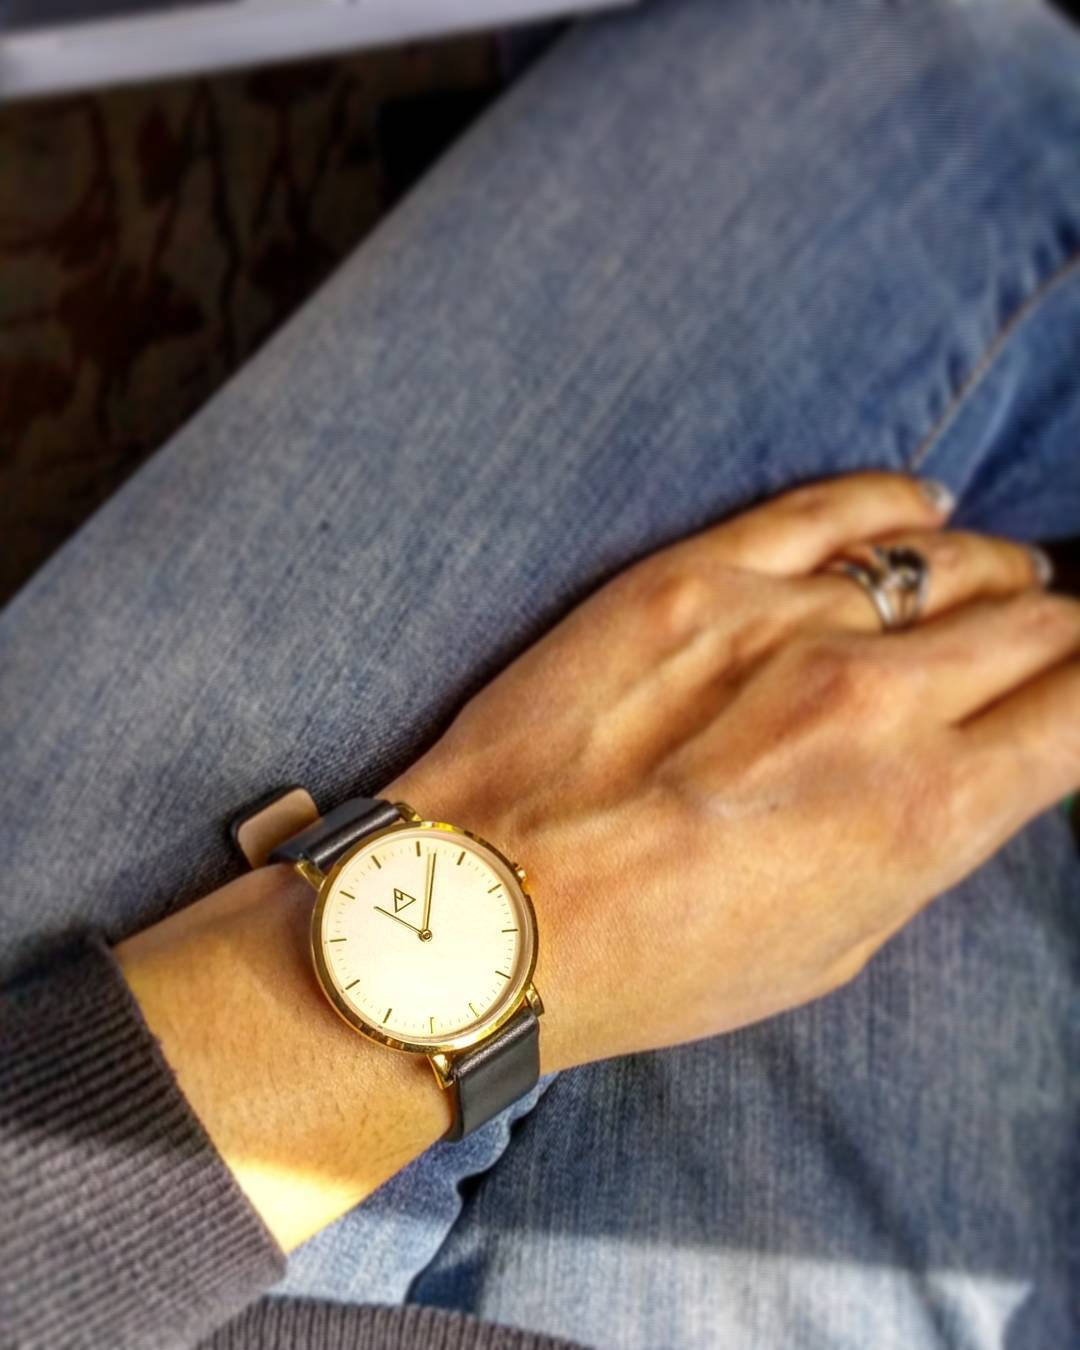 Timeless focus ⌚  In ❤ with my @mediumwatches timepiece. I rarely wear a watch but this sleek design makes me think it's going to become one of my style staples